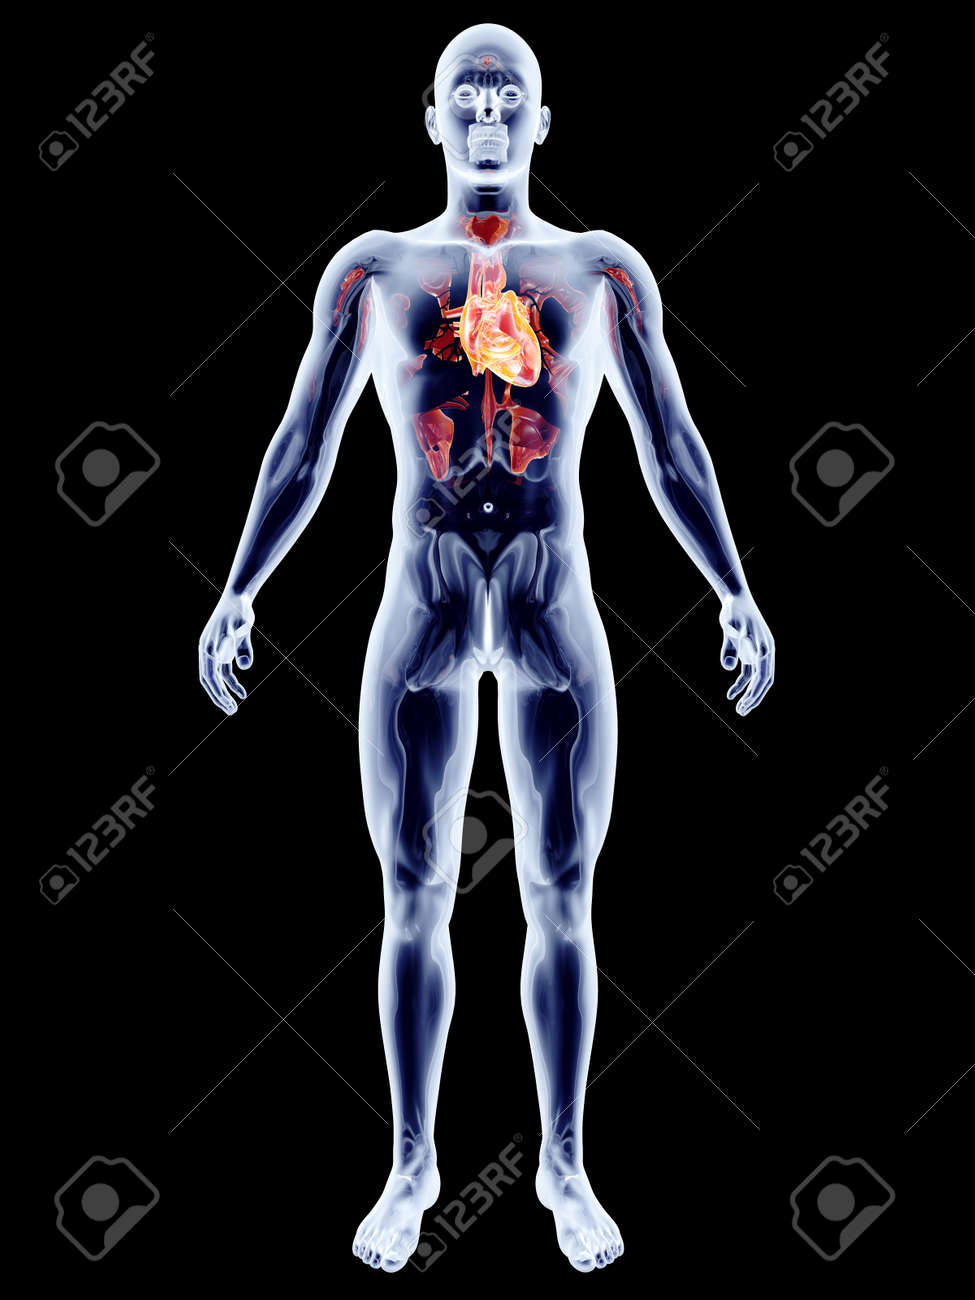 The Human Heart. 3D Rendered Anatomical Illustration. Stock Photo ...